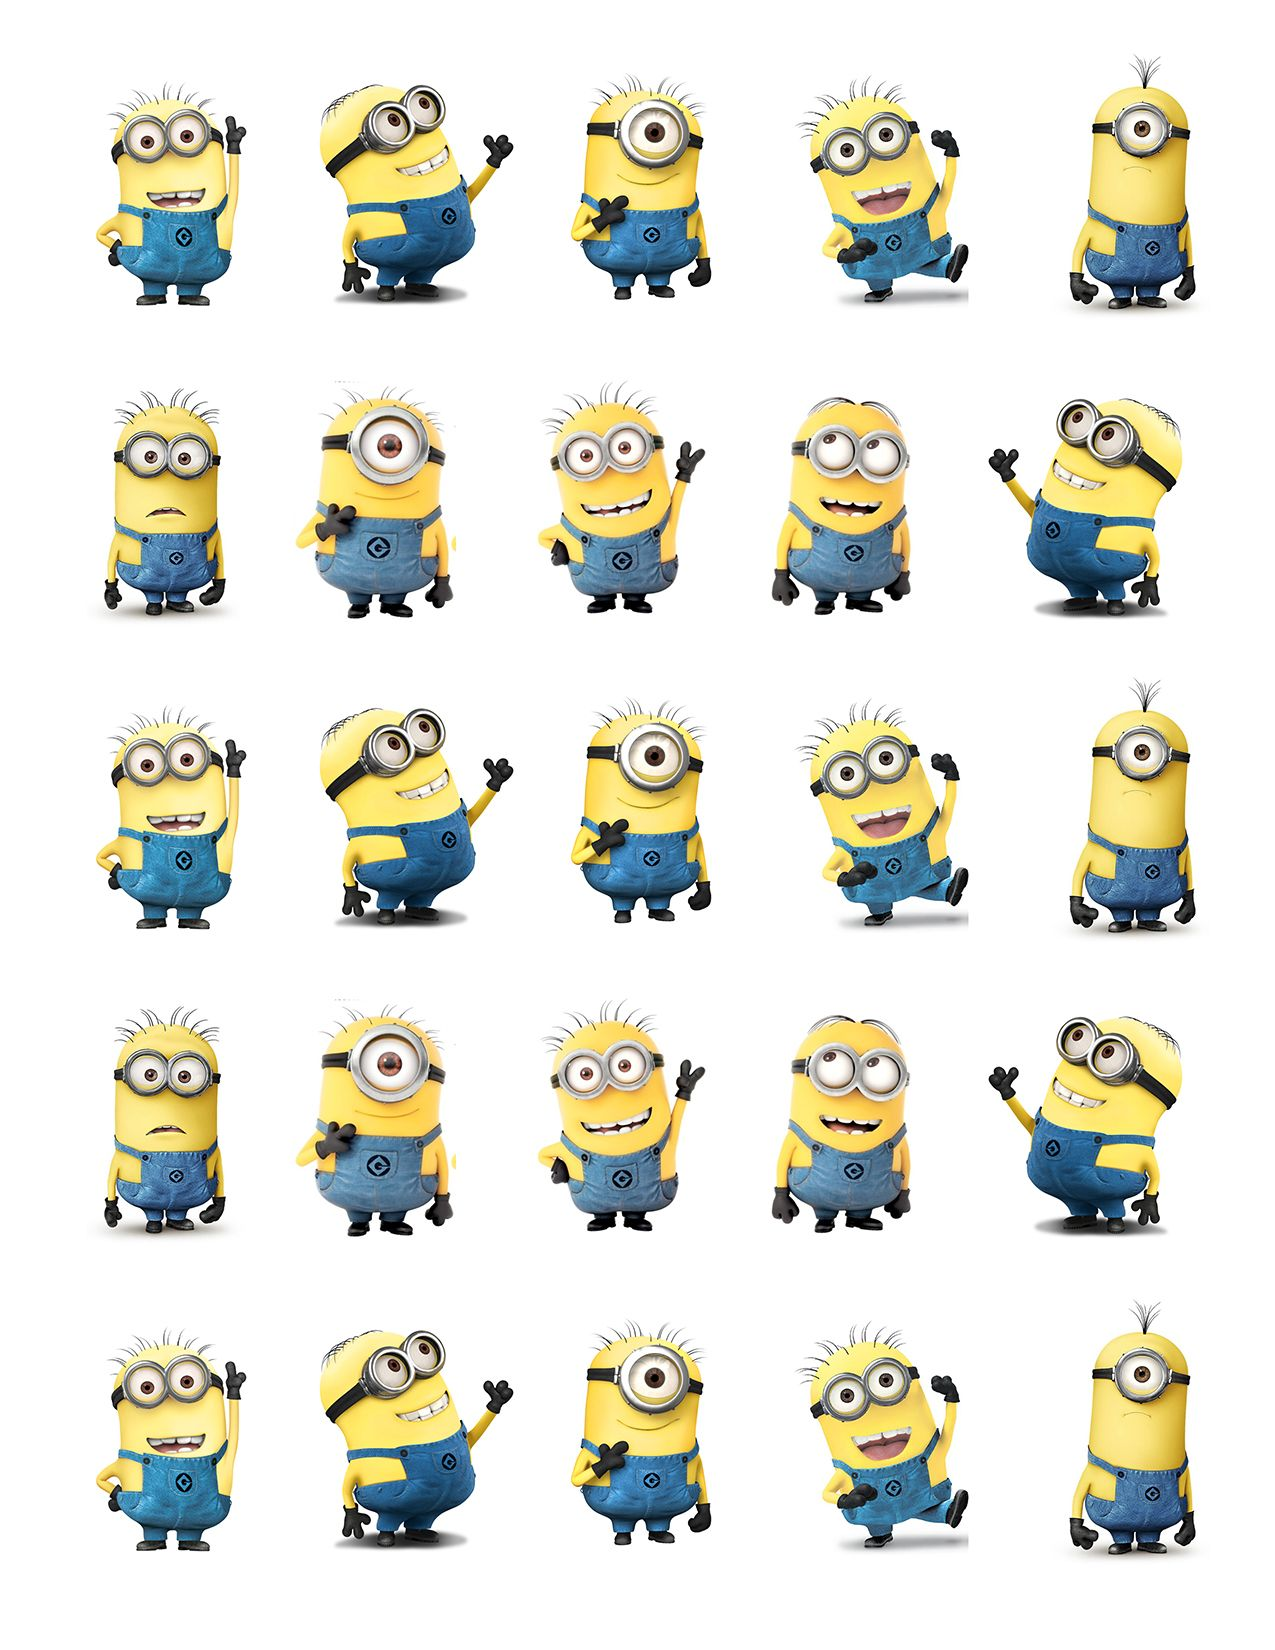 Despicable Me Minions Printable Party Approx 1 5 Height Cutouts For Cupcakes Favors Toppers Stickers Minion Printables Minion Party Minion Birthday